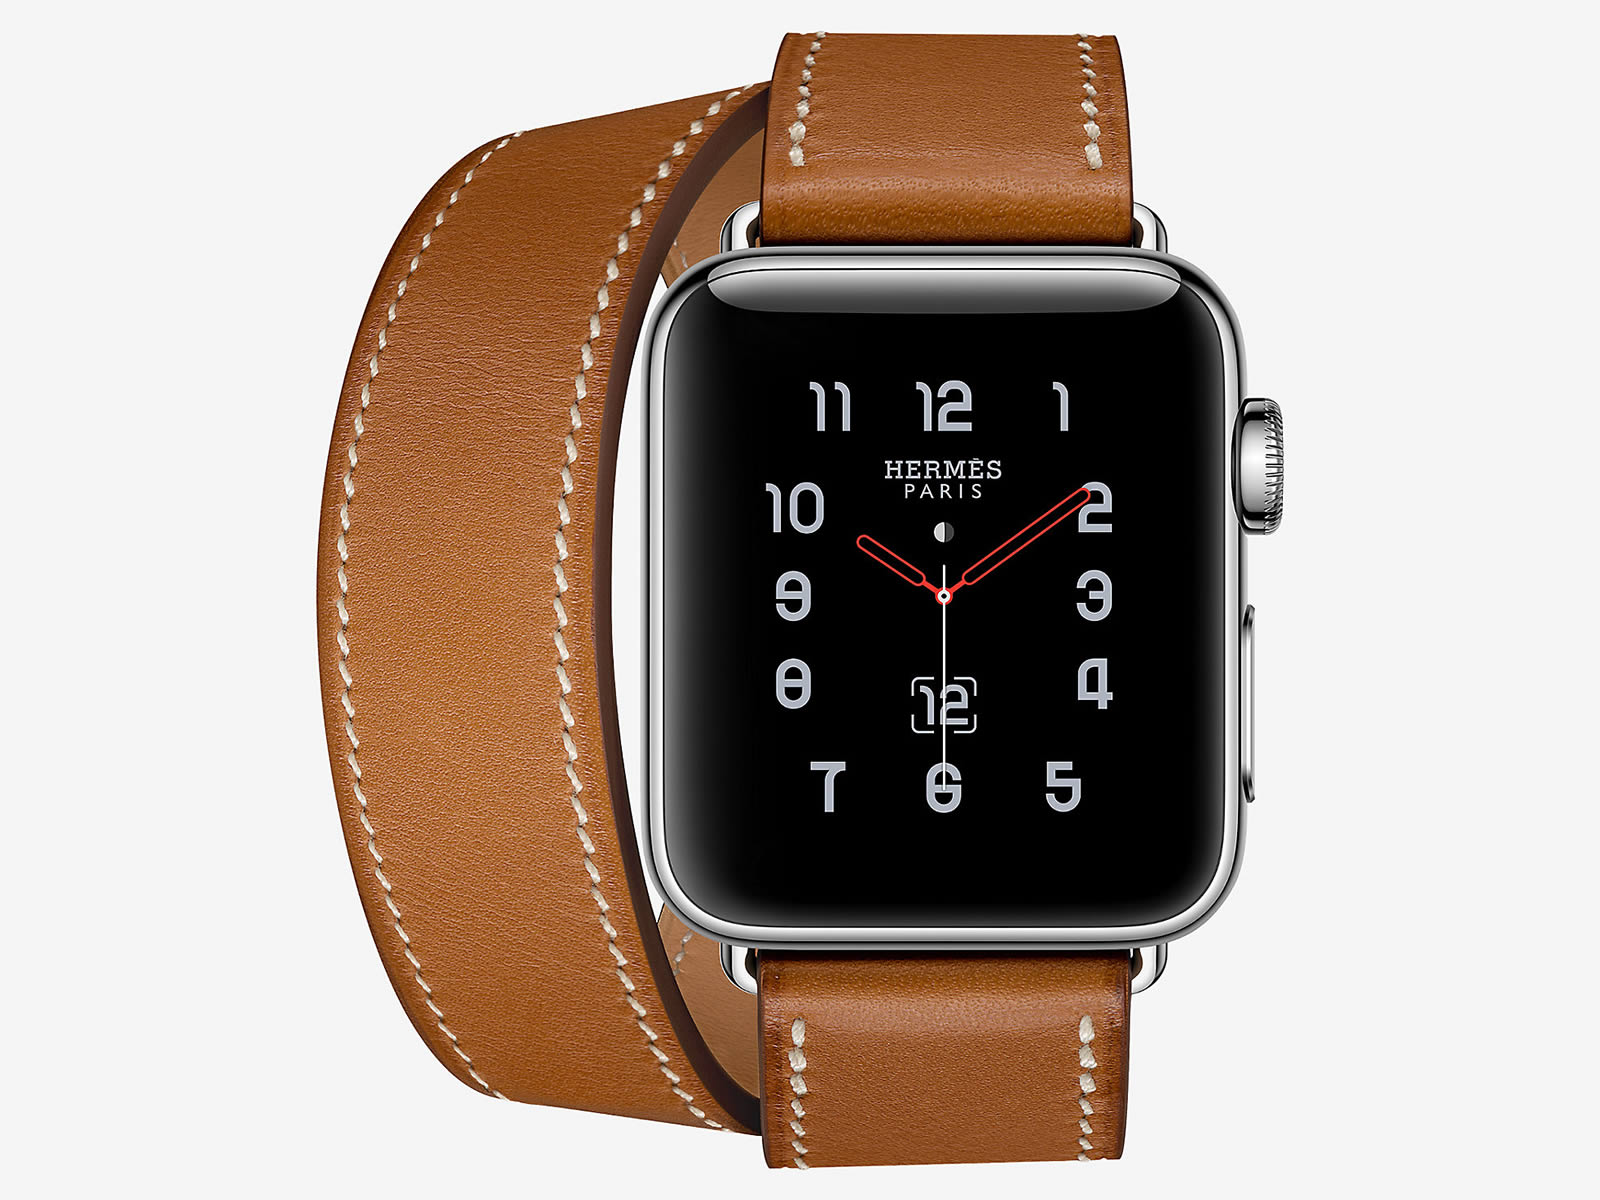 h1000351-3400-apple-watch-hermes-series-3-double-tour-.jpg